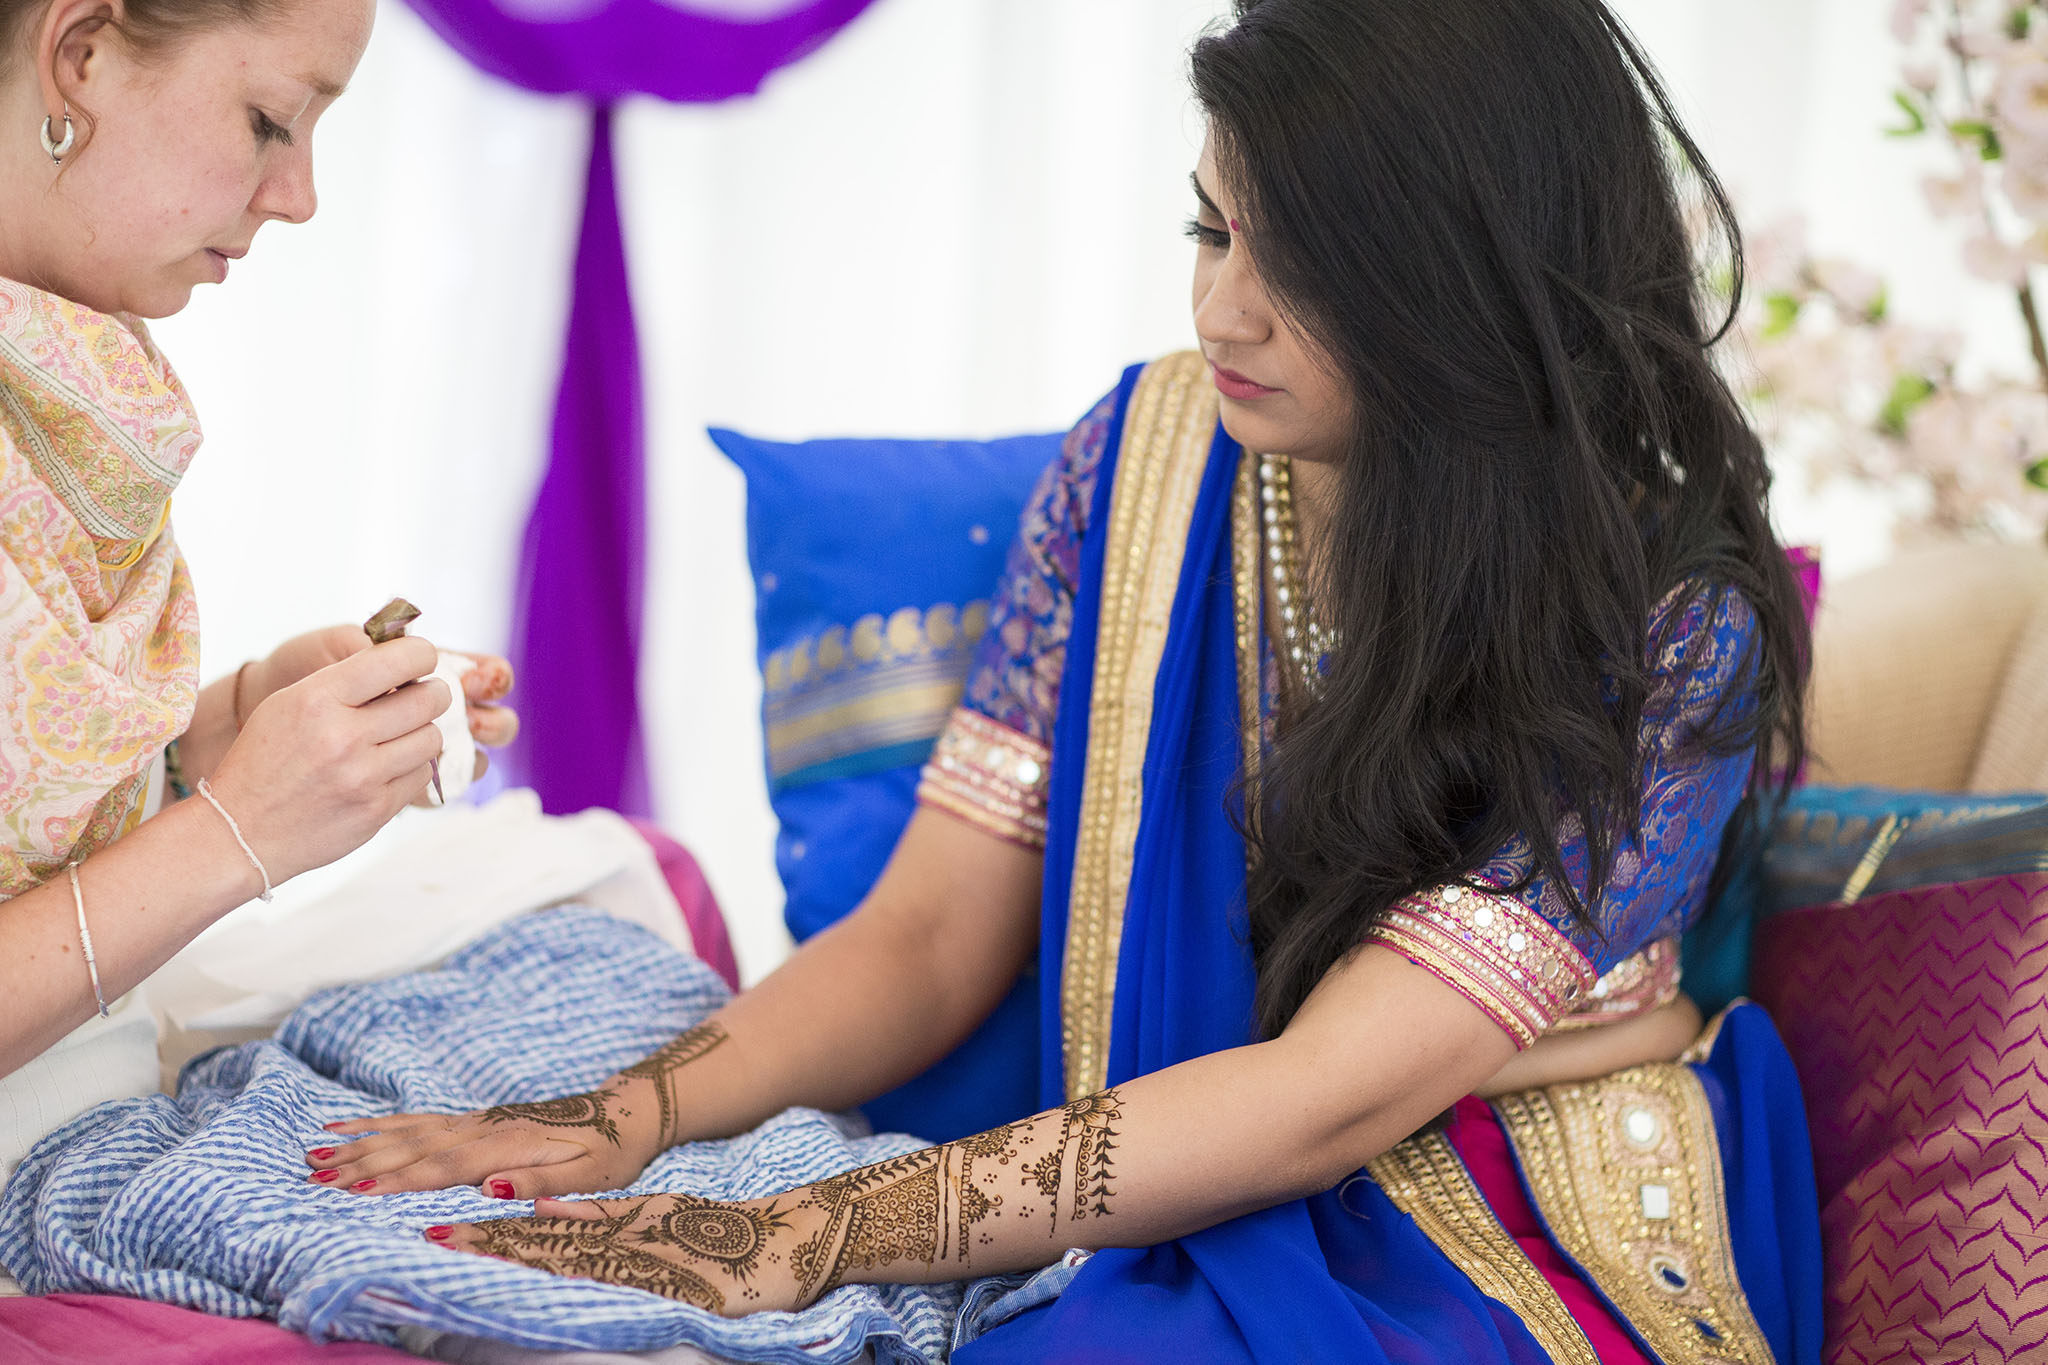 elizabethgphotography_kingslangley_hertfordshire_fineart_indian_wedding_mehndi_photography_jigna_bhuja_06.jpg